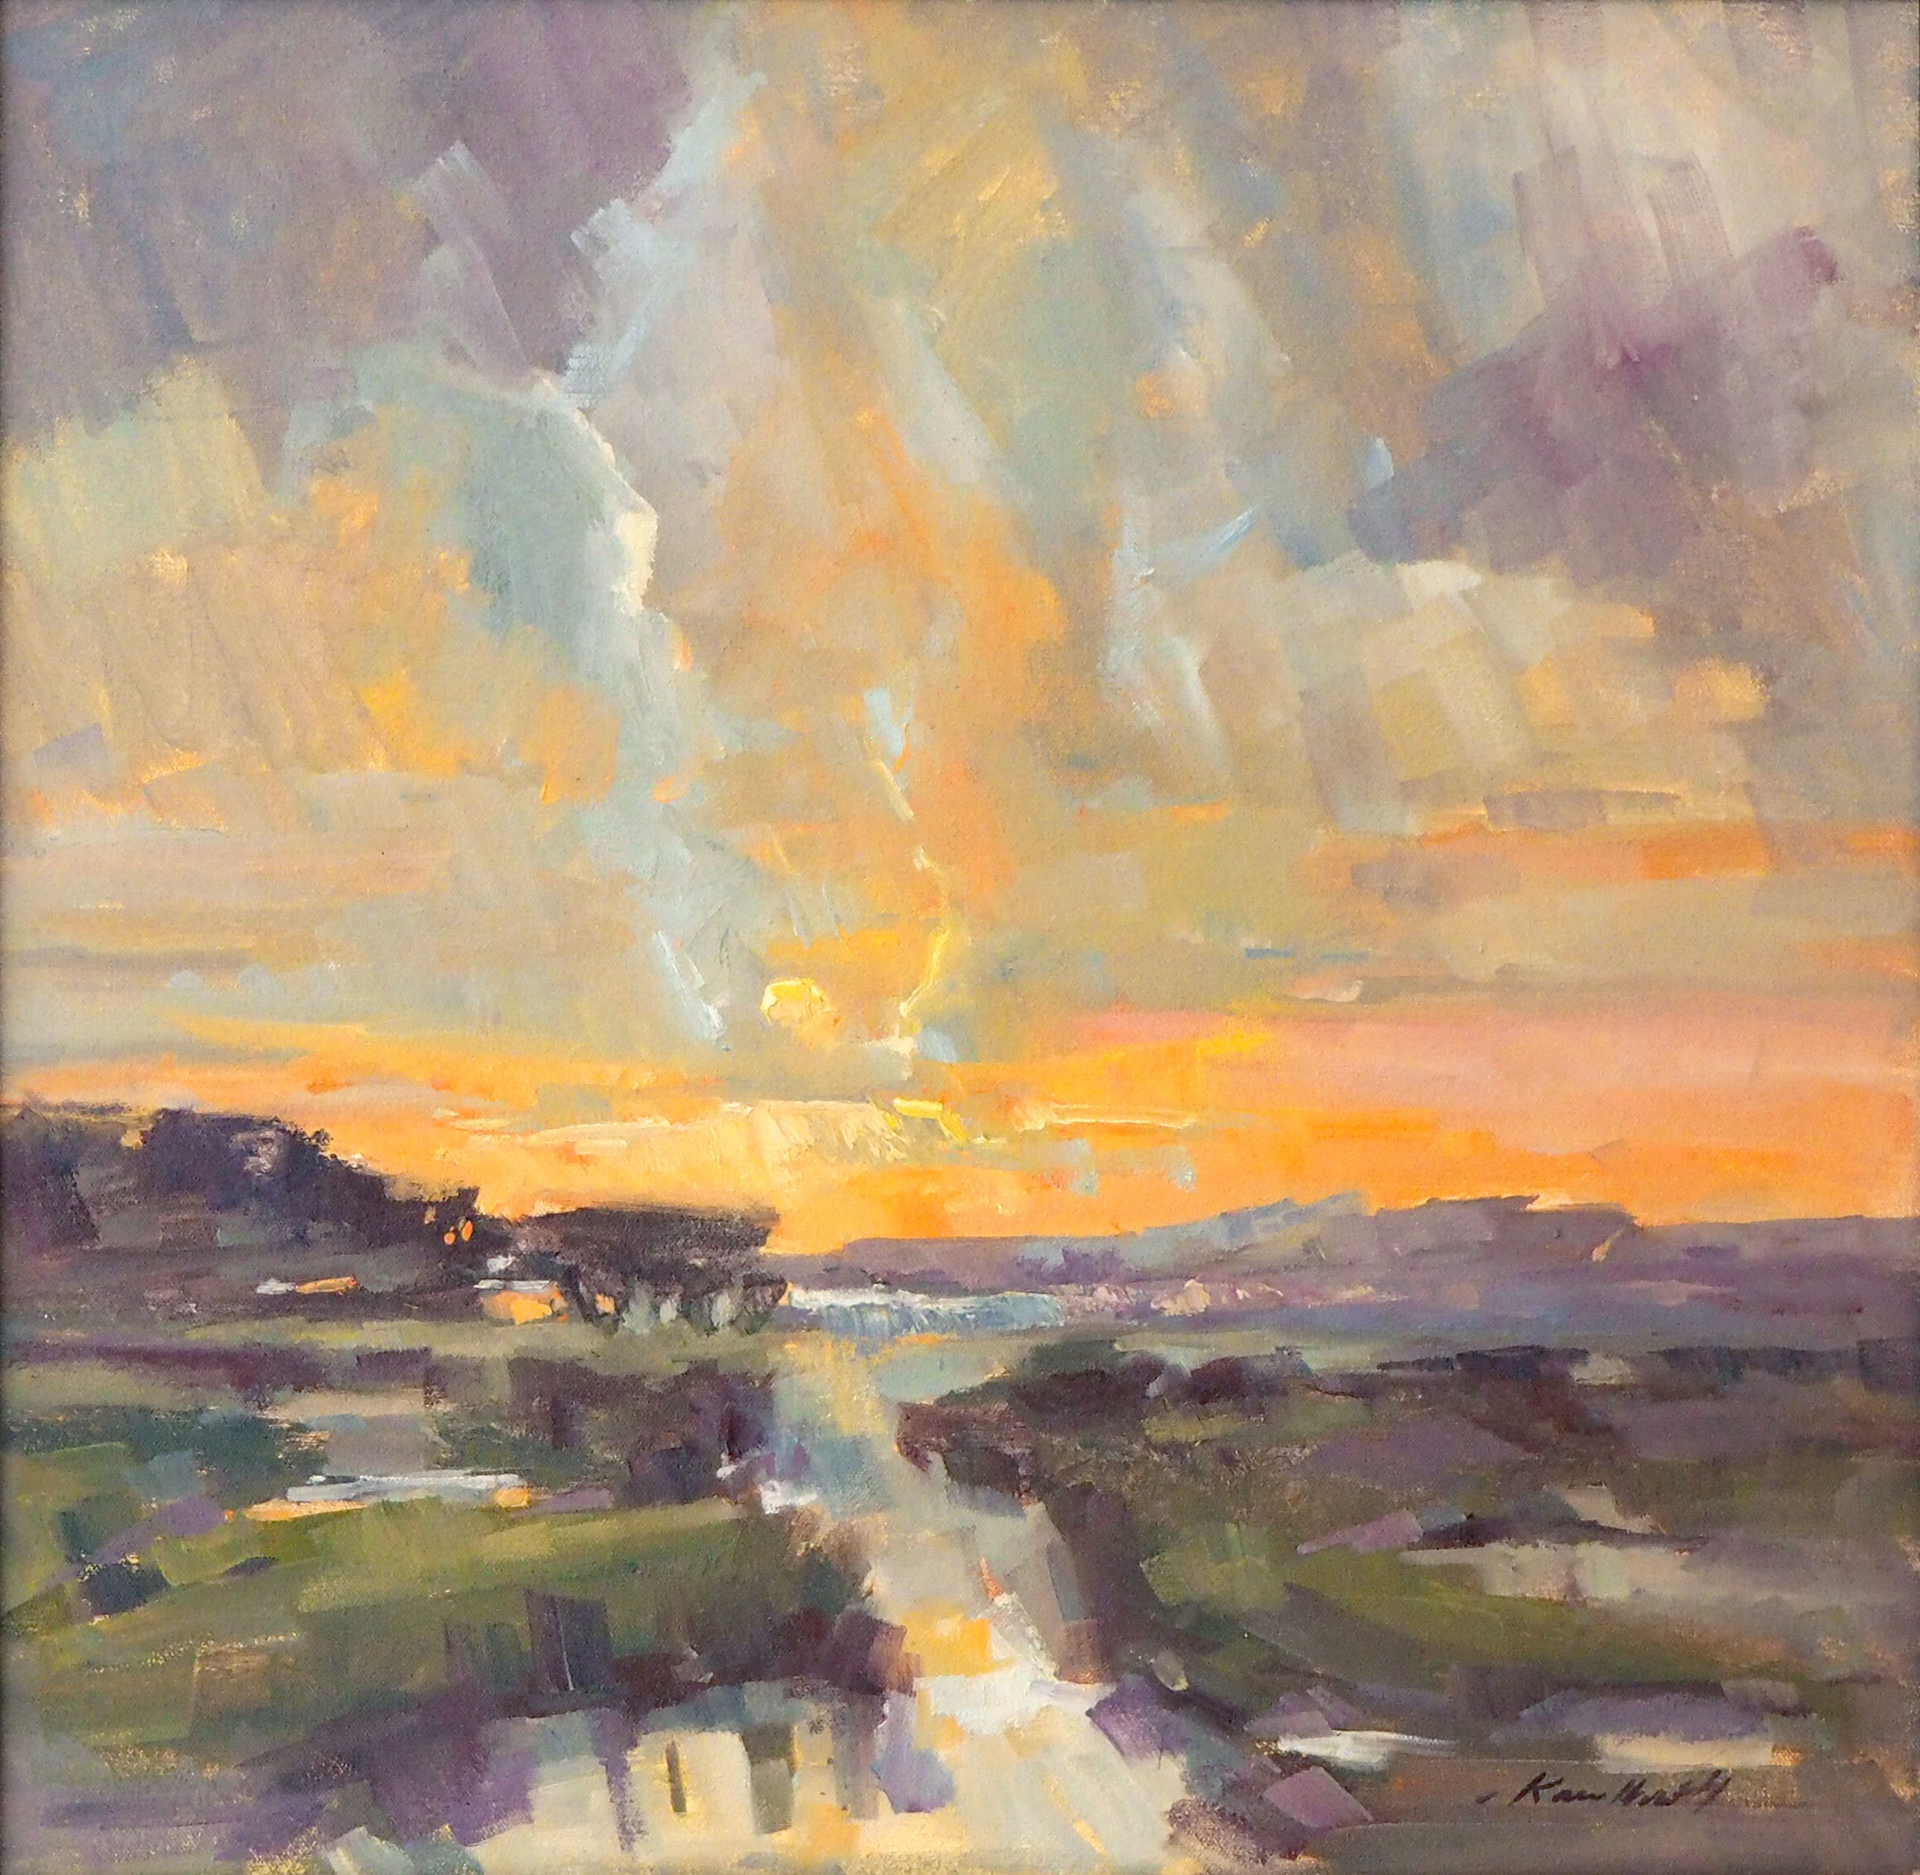 Fiery Sunset by Karen Hewitt Hagan